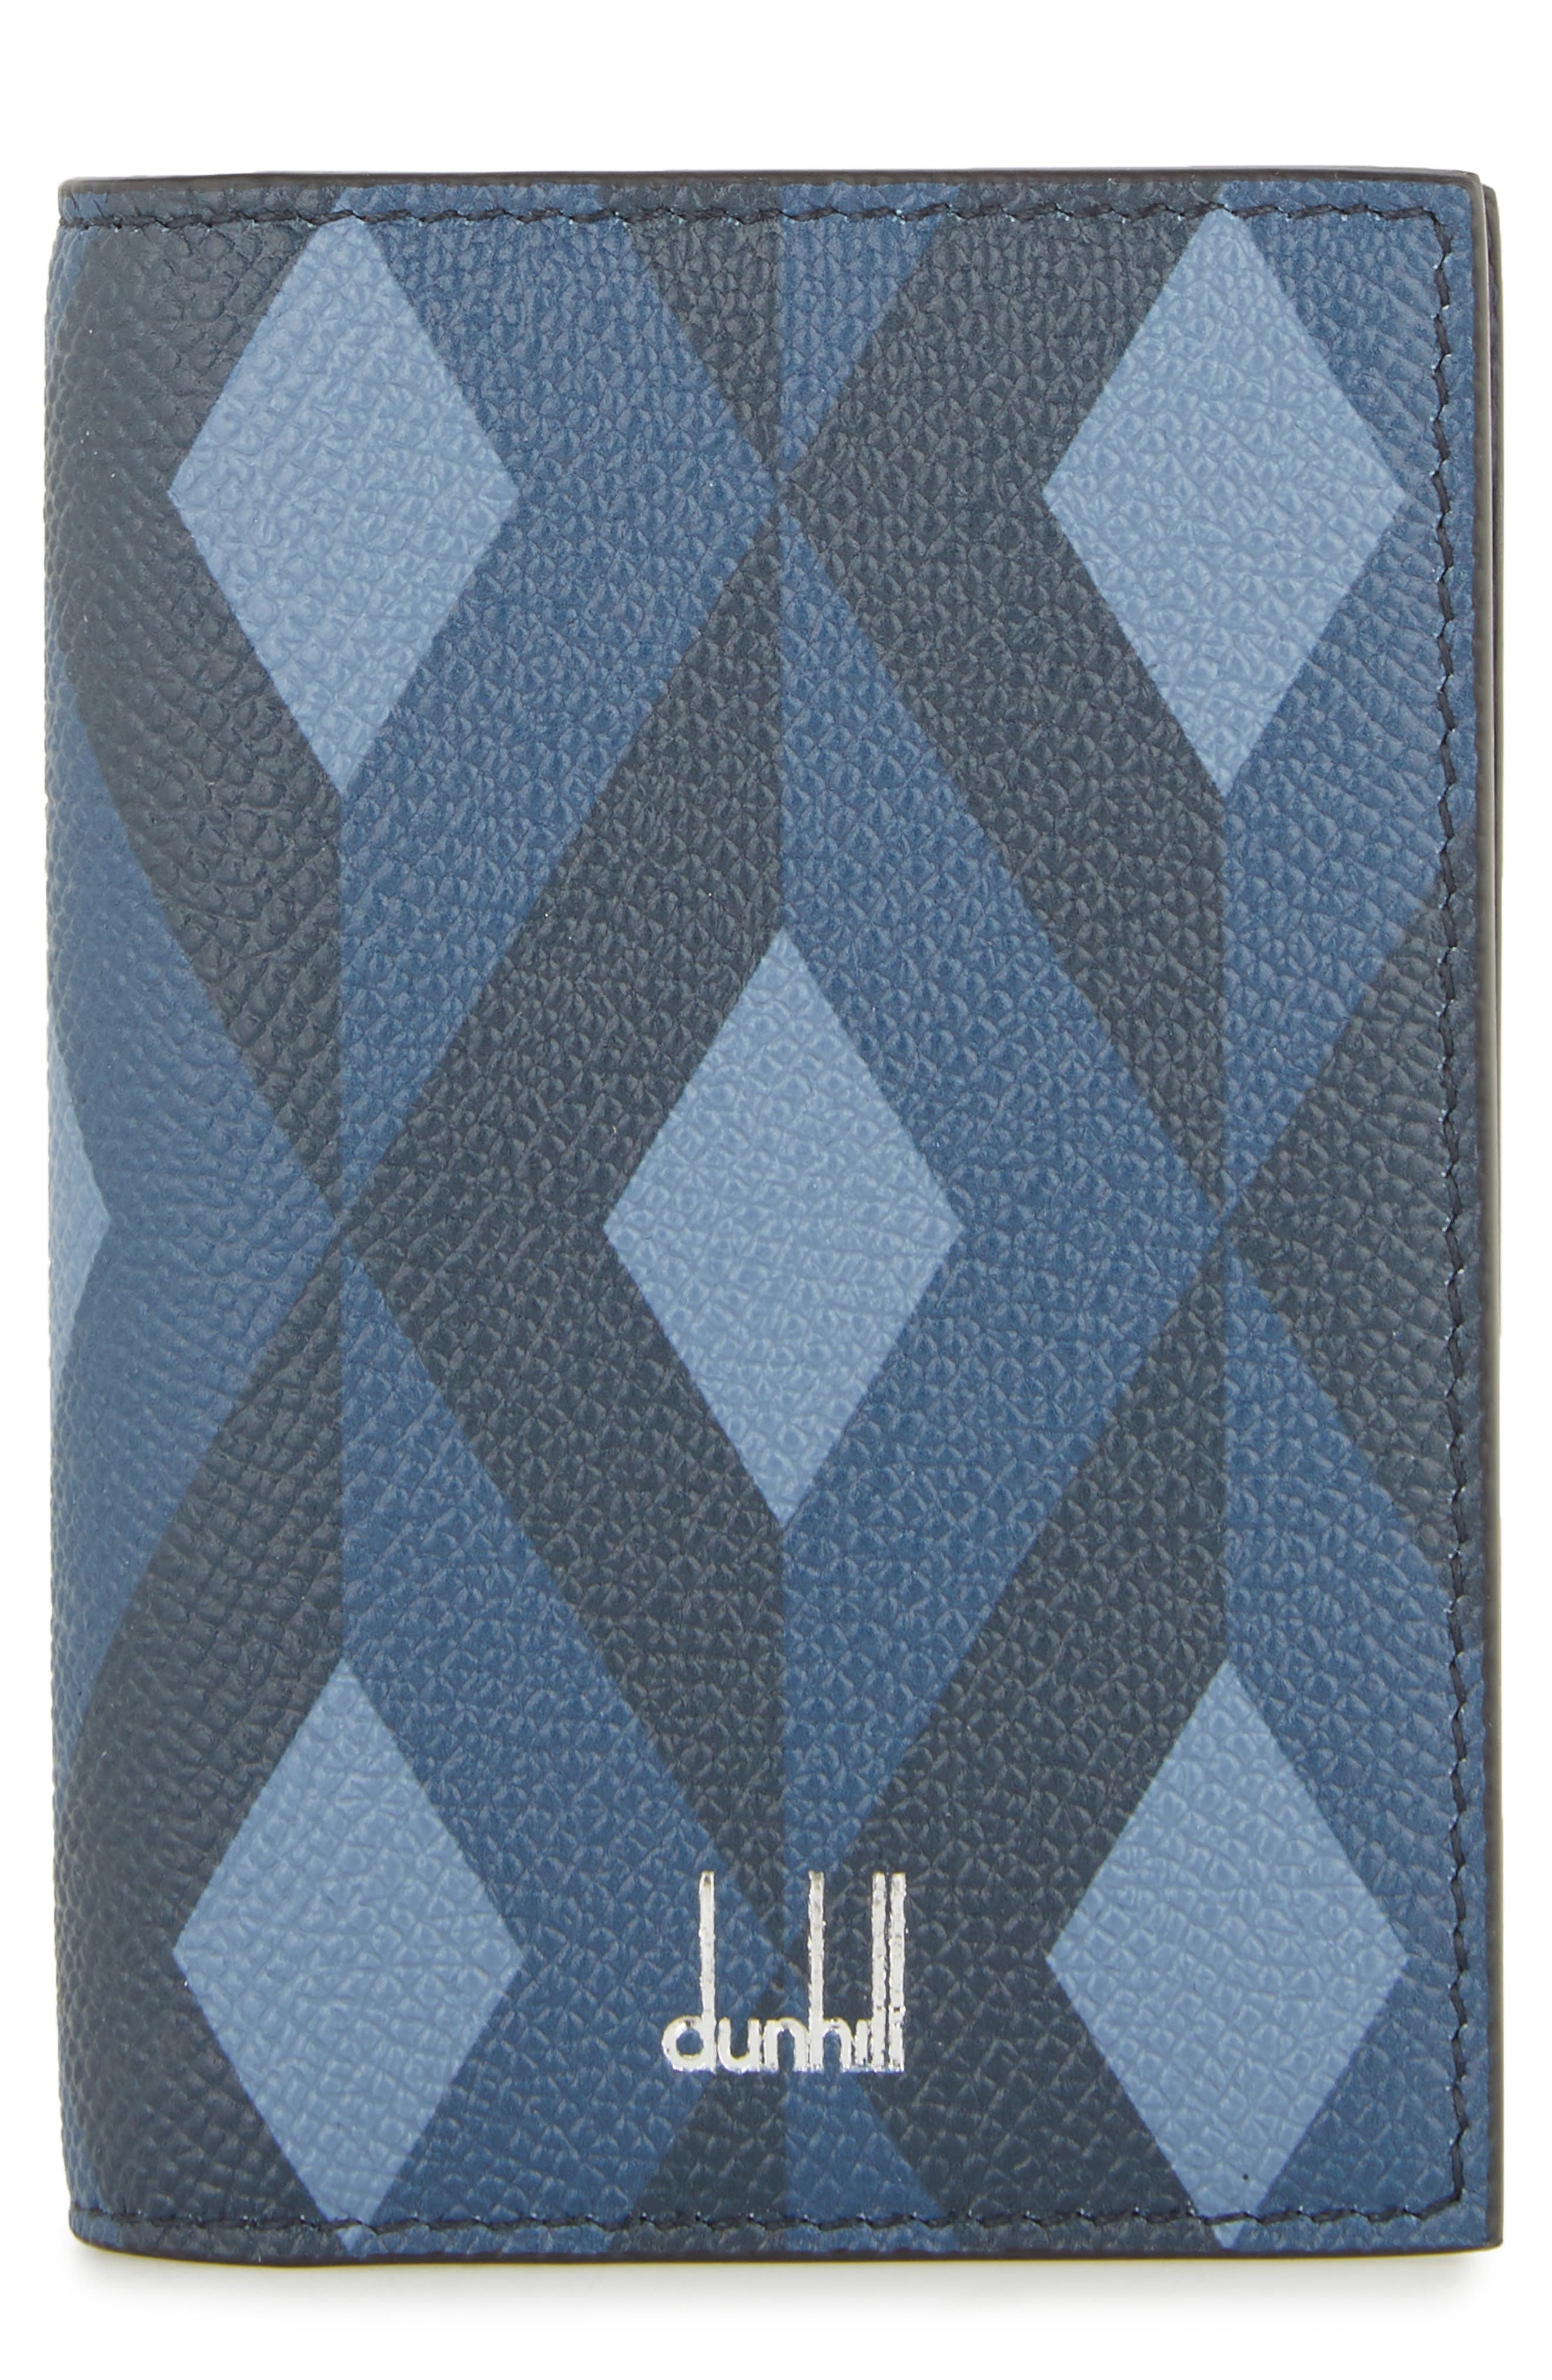 Dunhill Cadogan Leather Business Card Case - Blue